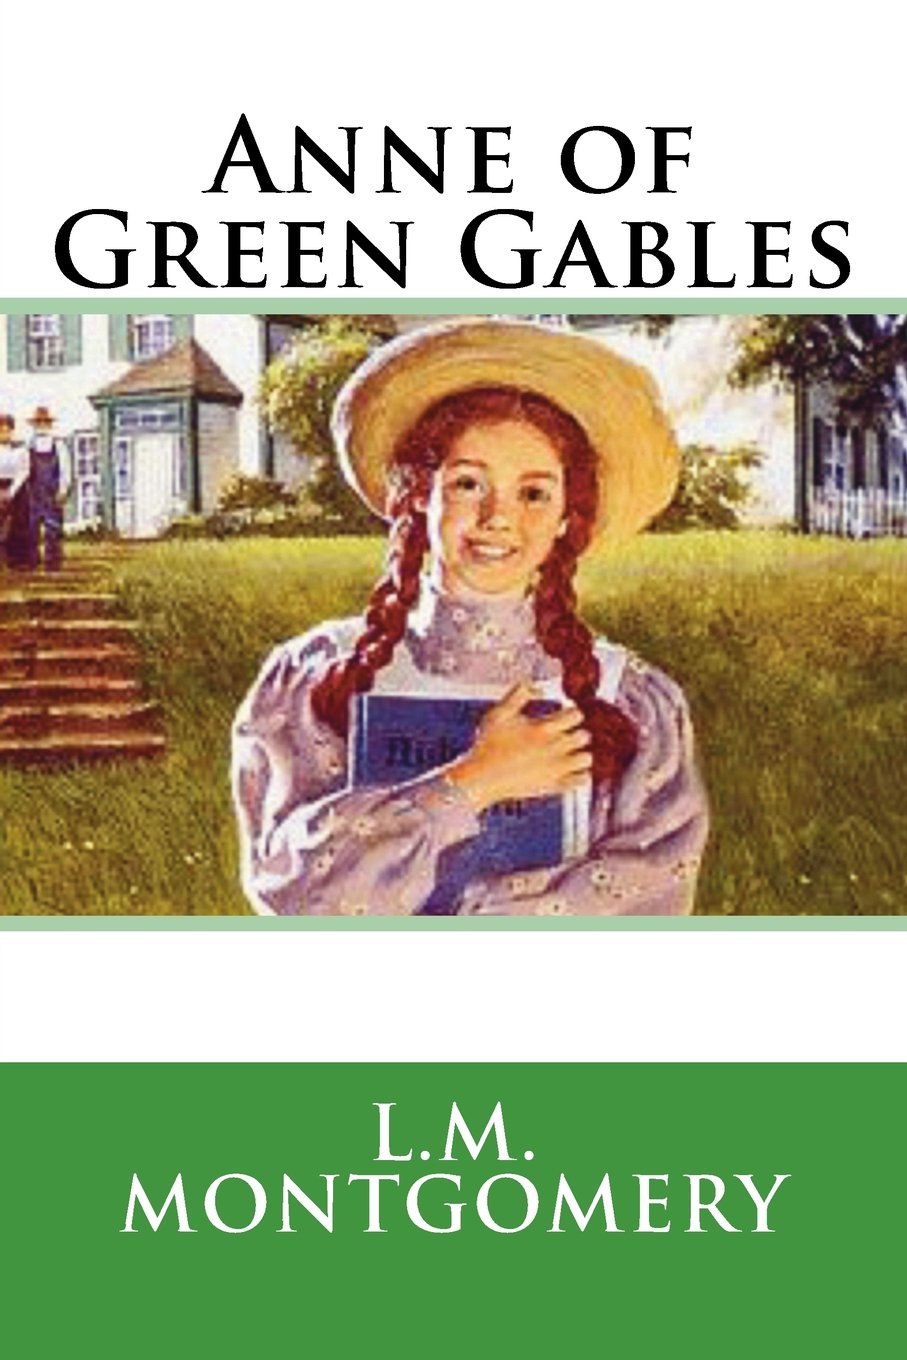 anne-of-green-gables-book-cover.jpg